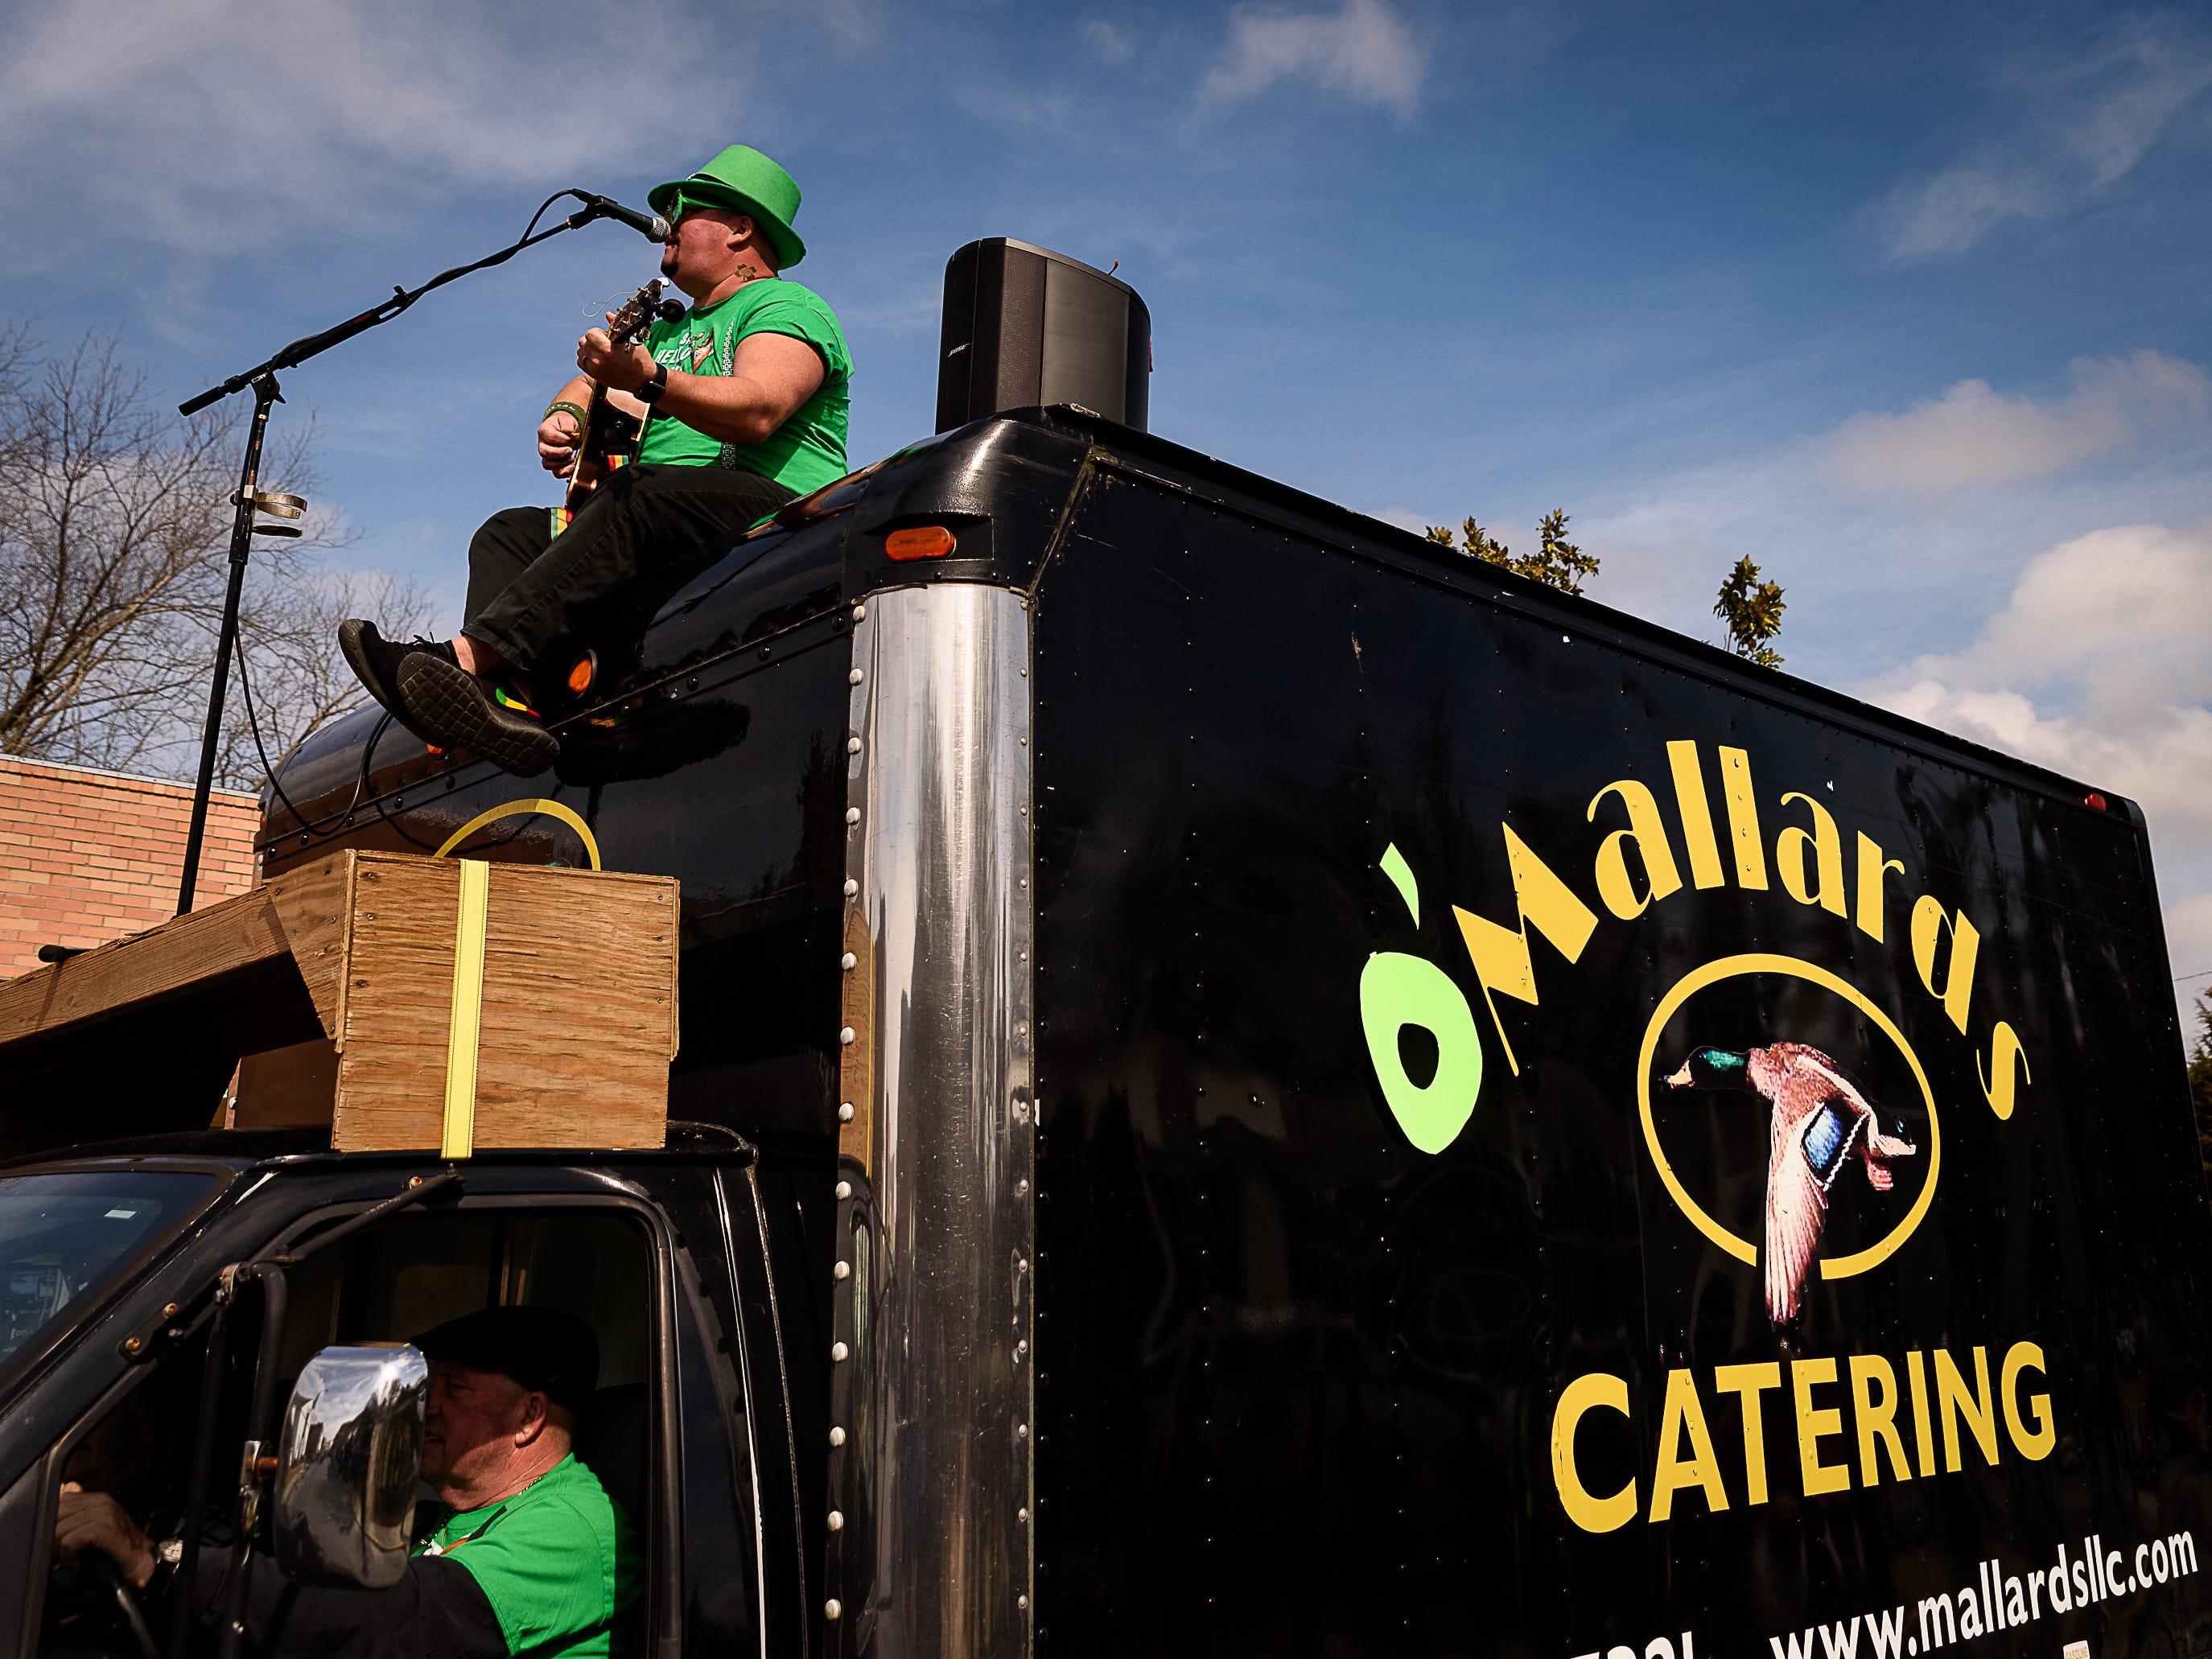 Johnny Mo. the musical chef, is perched atop the Mallards Restaurant Catering Truck as he performs in the Onancock parade.